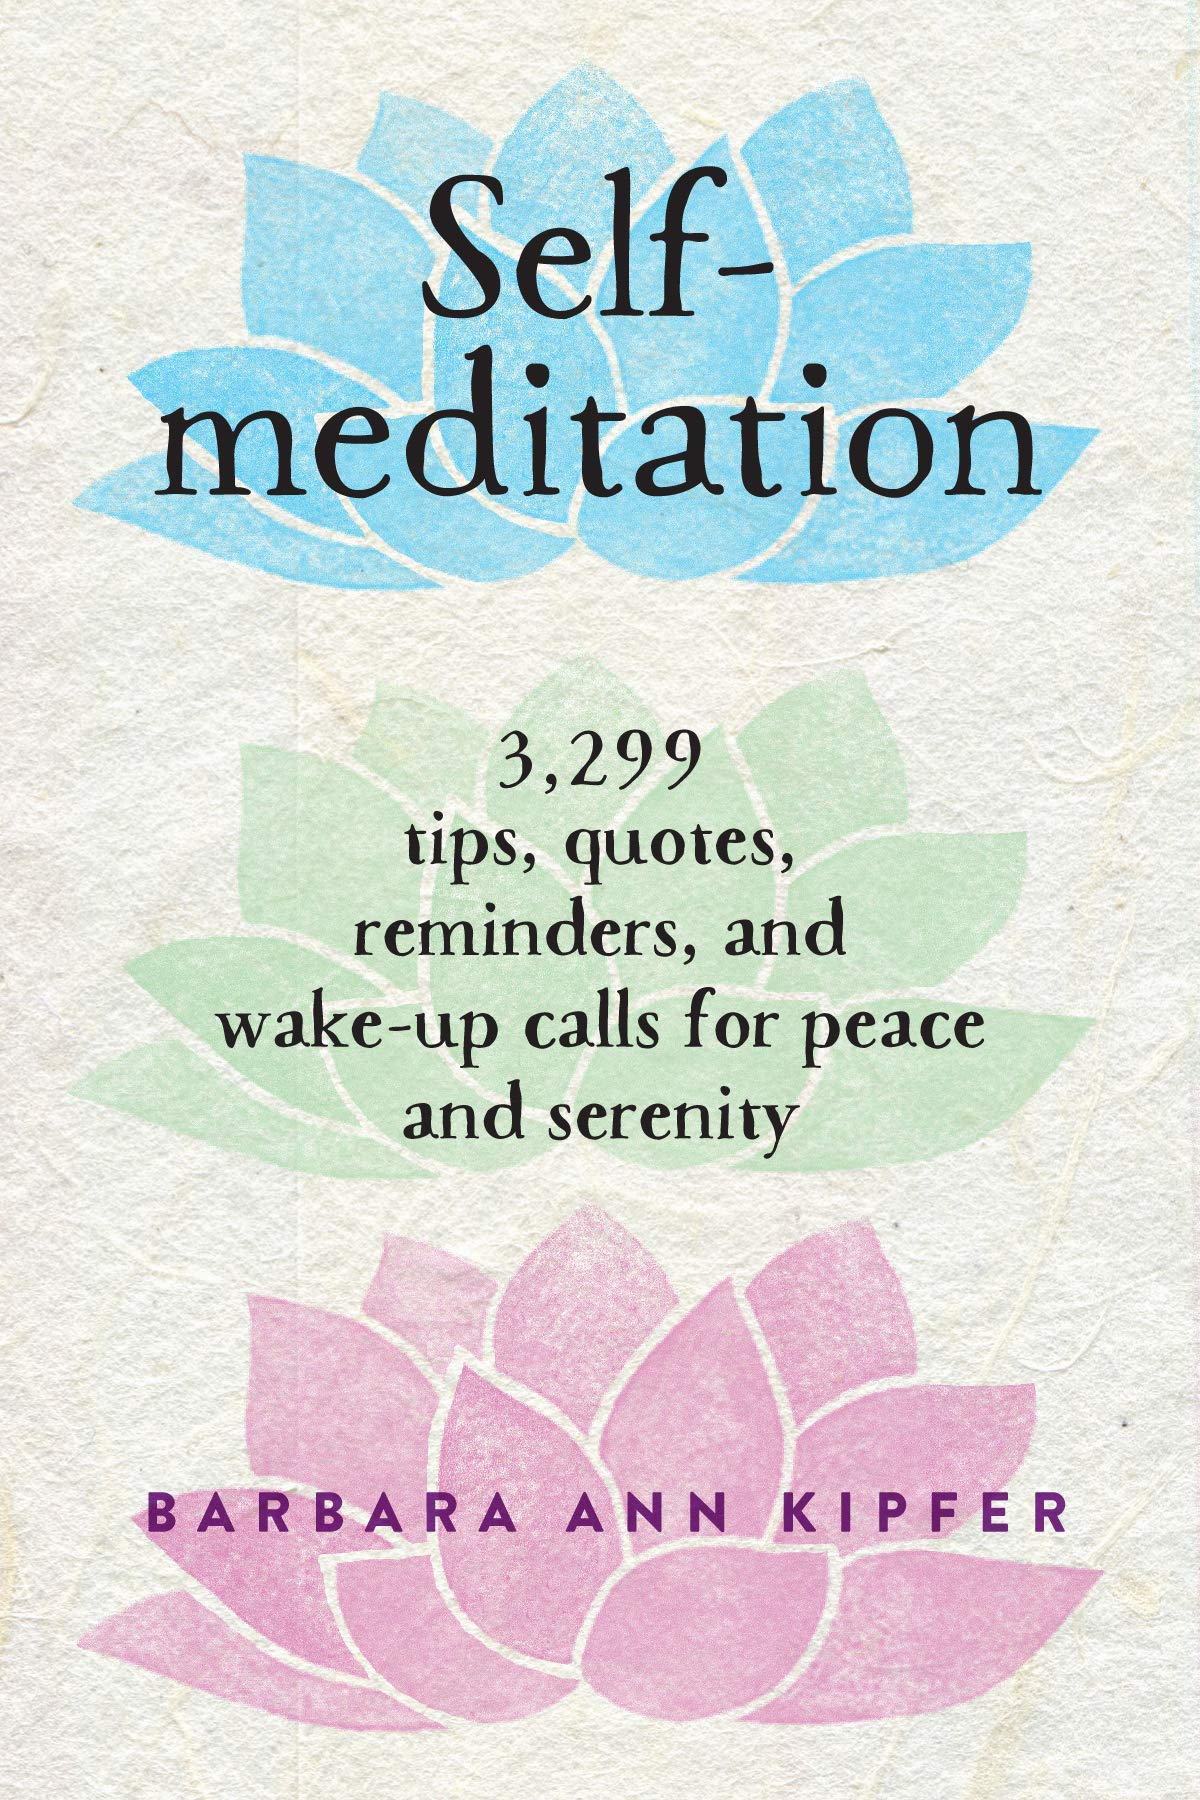 Self Meditation 3 299 Tips Quotes Reminders And Wake Up Calls For Peace And Serenity Kipfer Barbara Ann 9780761139287 Amazon Com Books